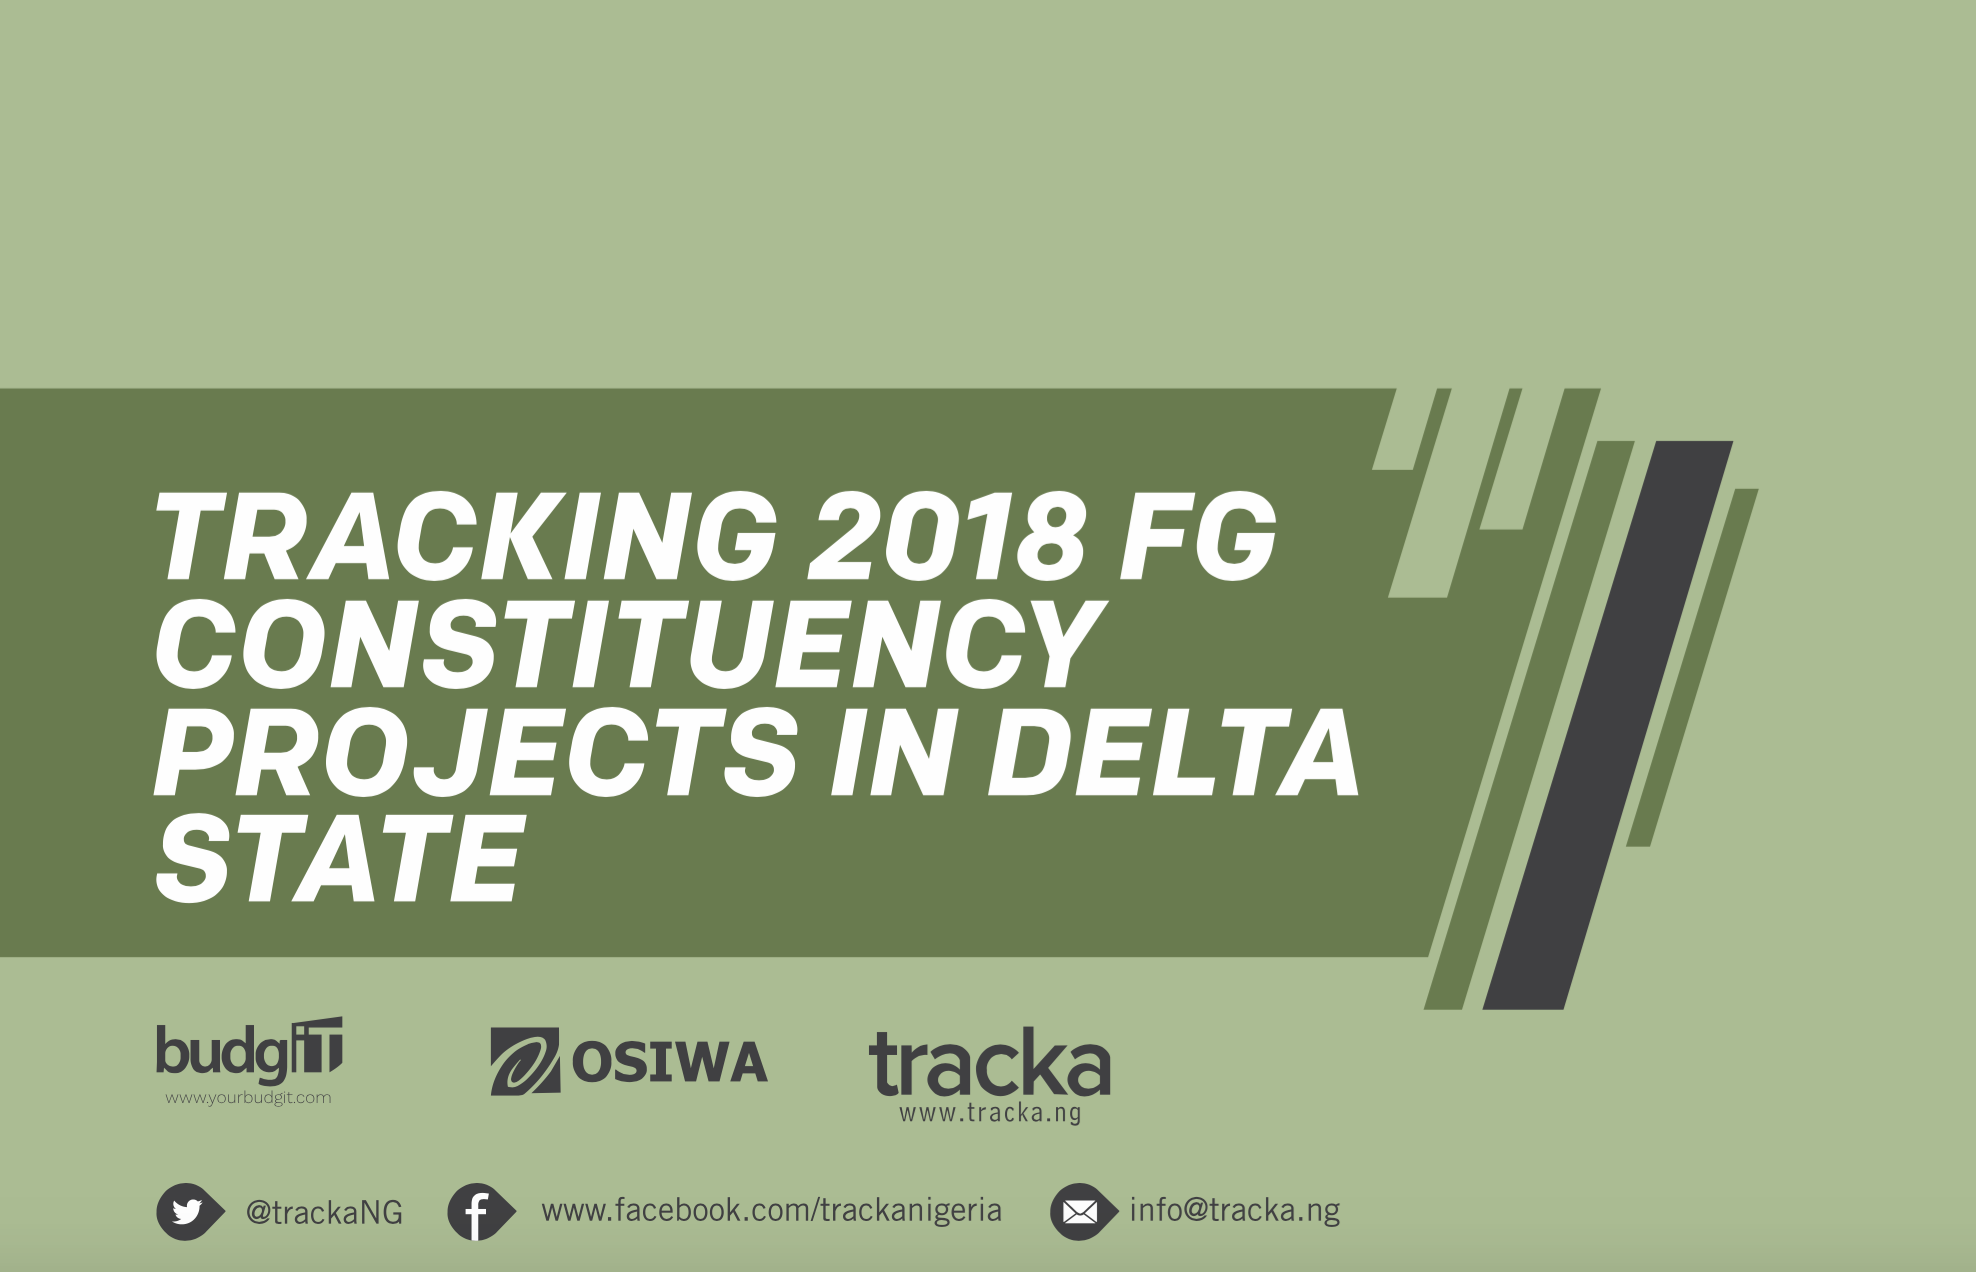 2018 FG Constituency Projects in Delta State